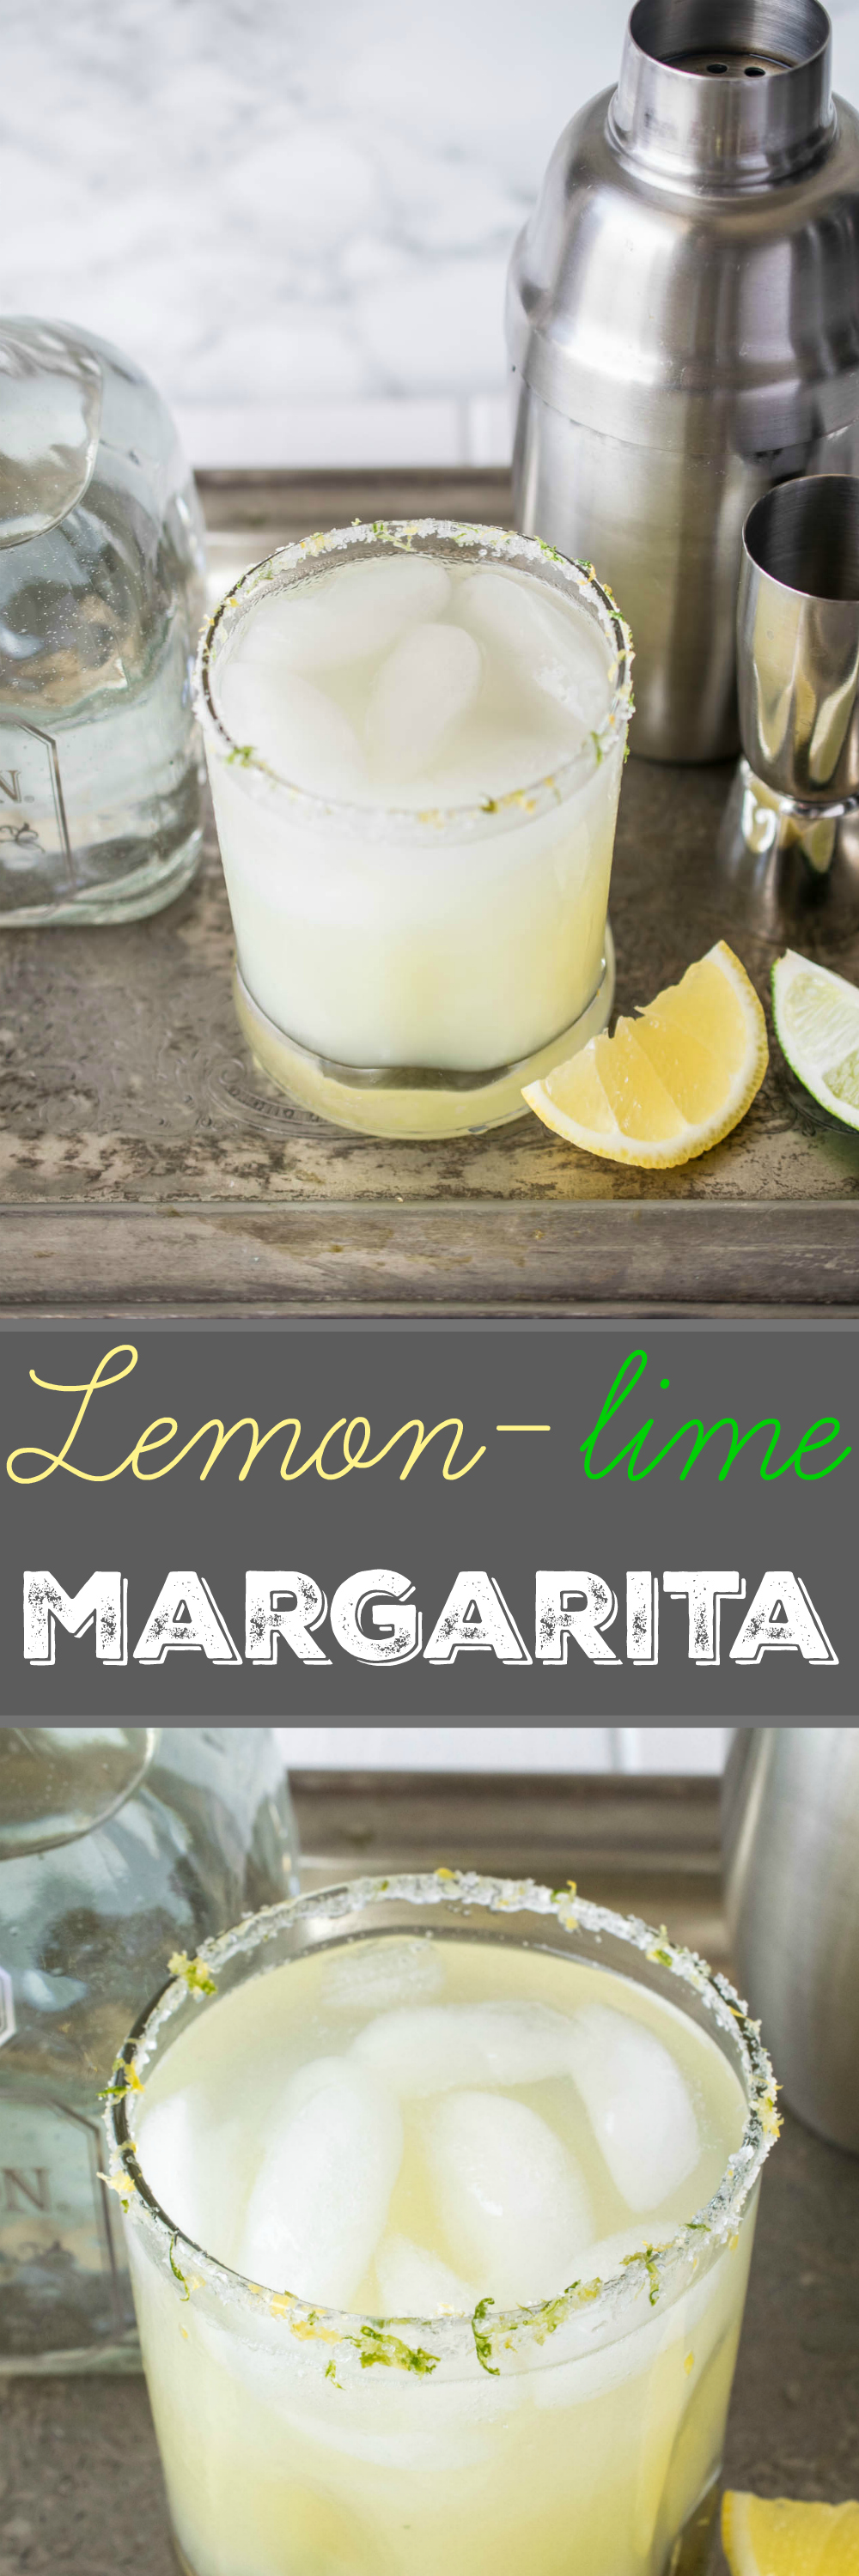 Lemon-lime margarita. A classic lime margarita gets a double citrus kick.